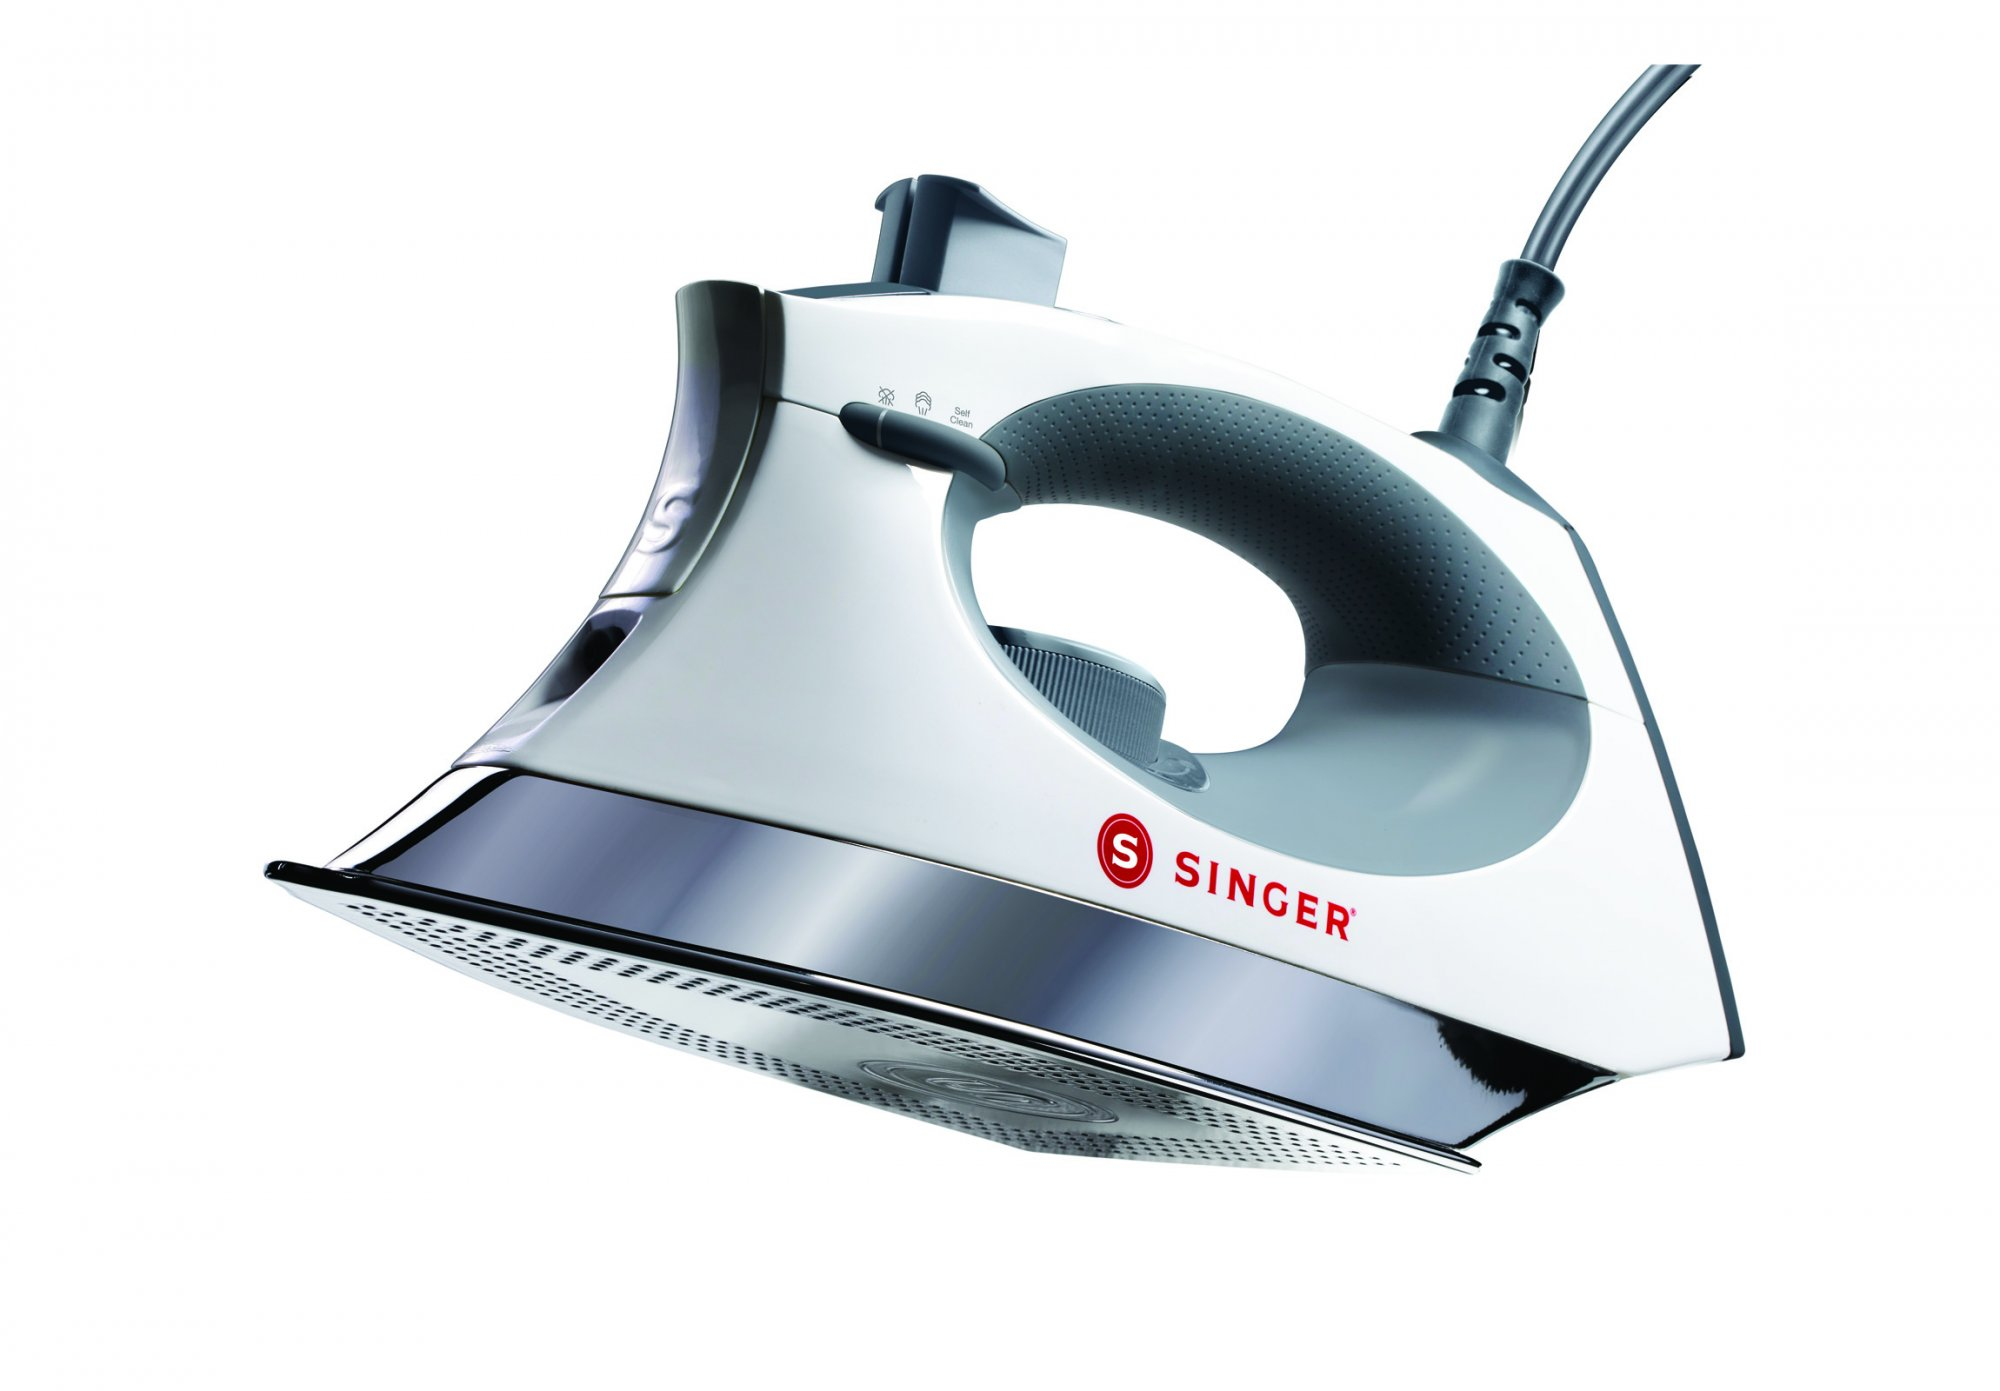 Singer SteamCraft Steam Iron White/Gray